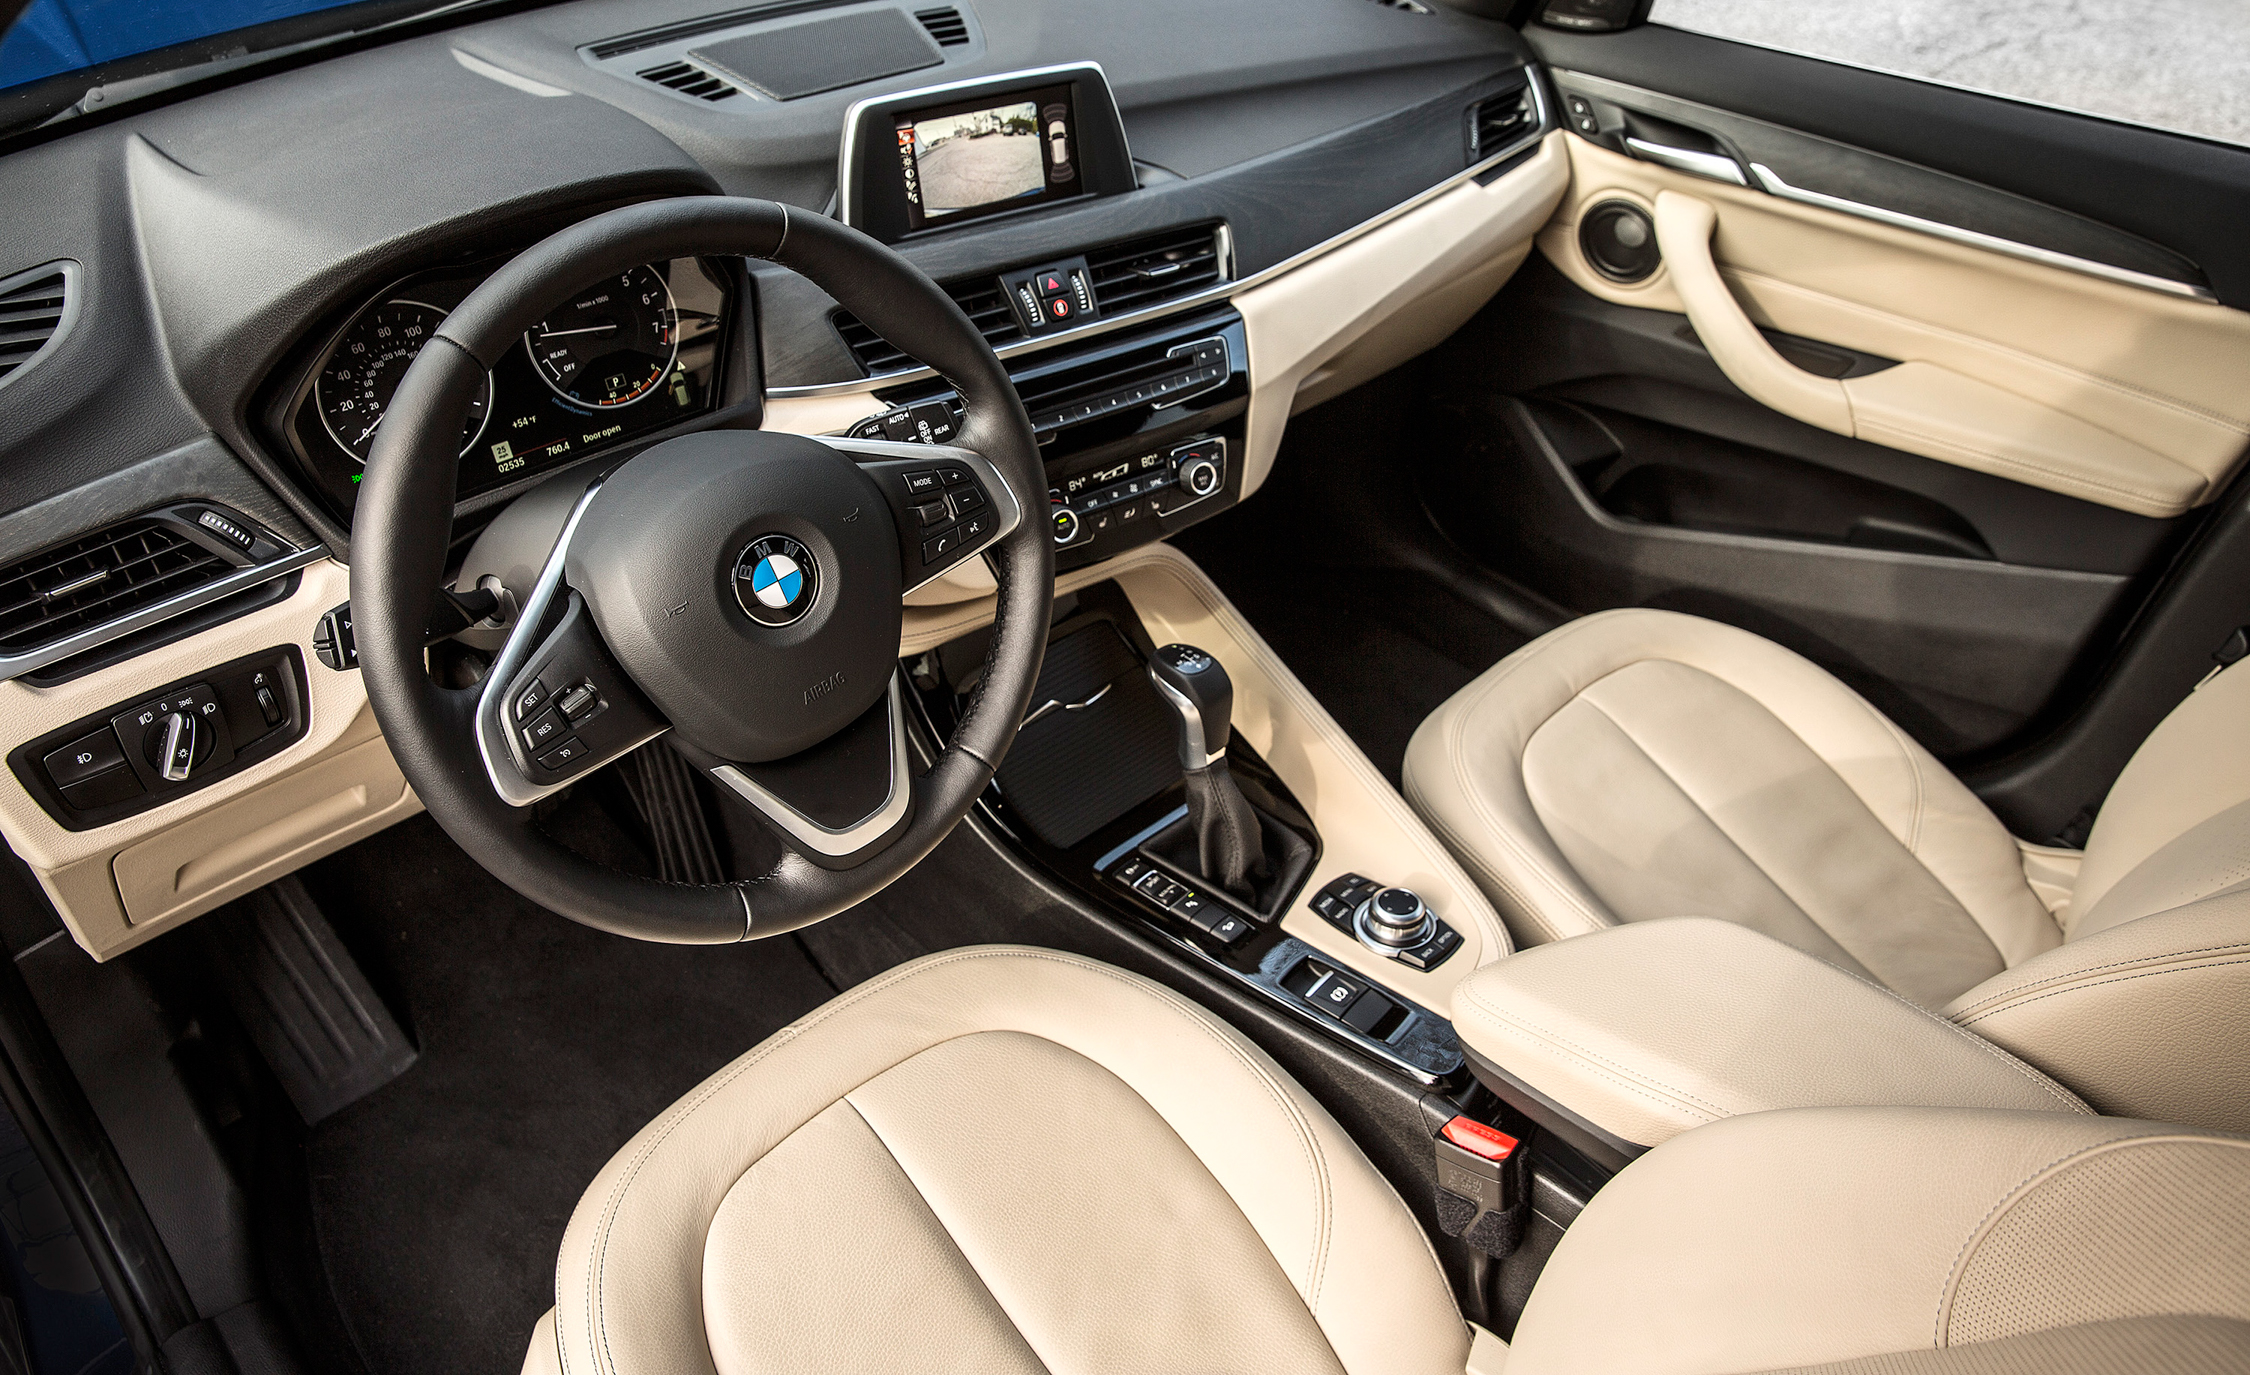 2016 BMW X1 Interior Driver Cockpit (Photo 13 of 36)